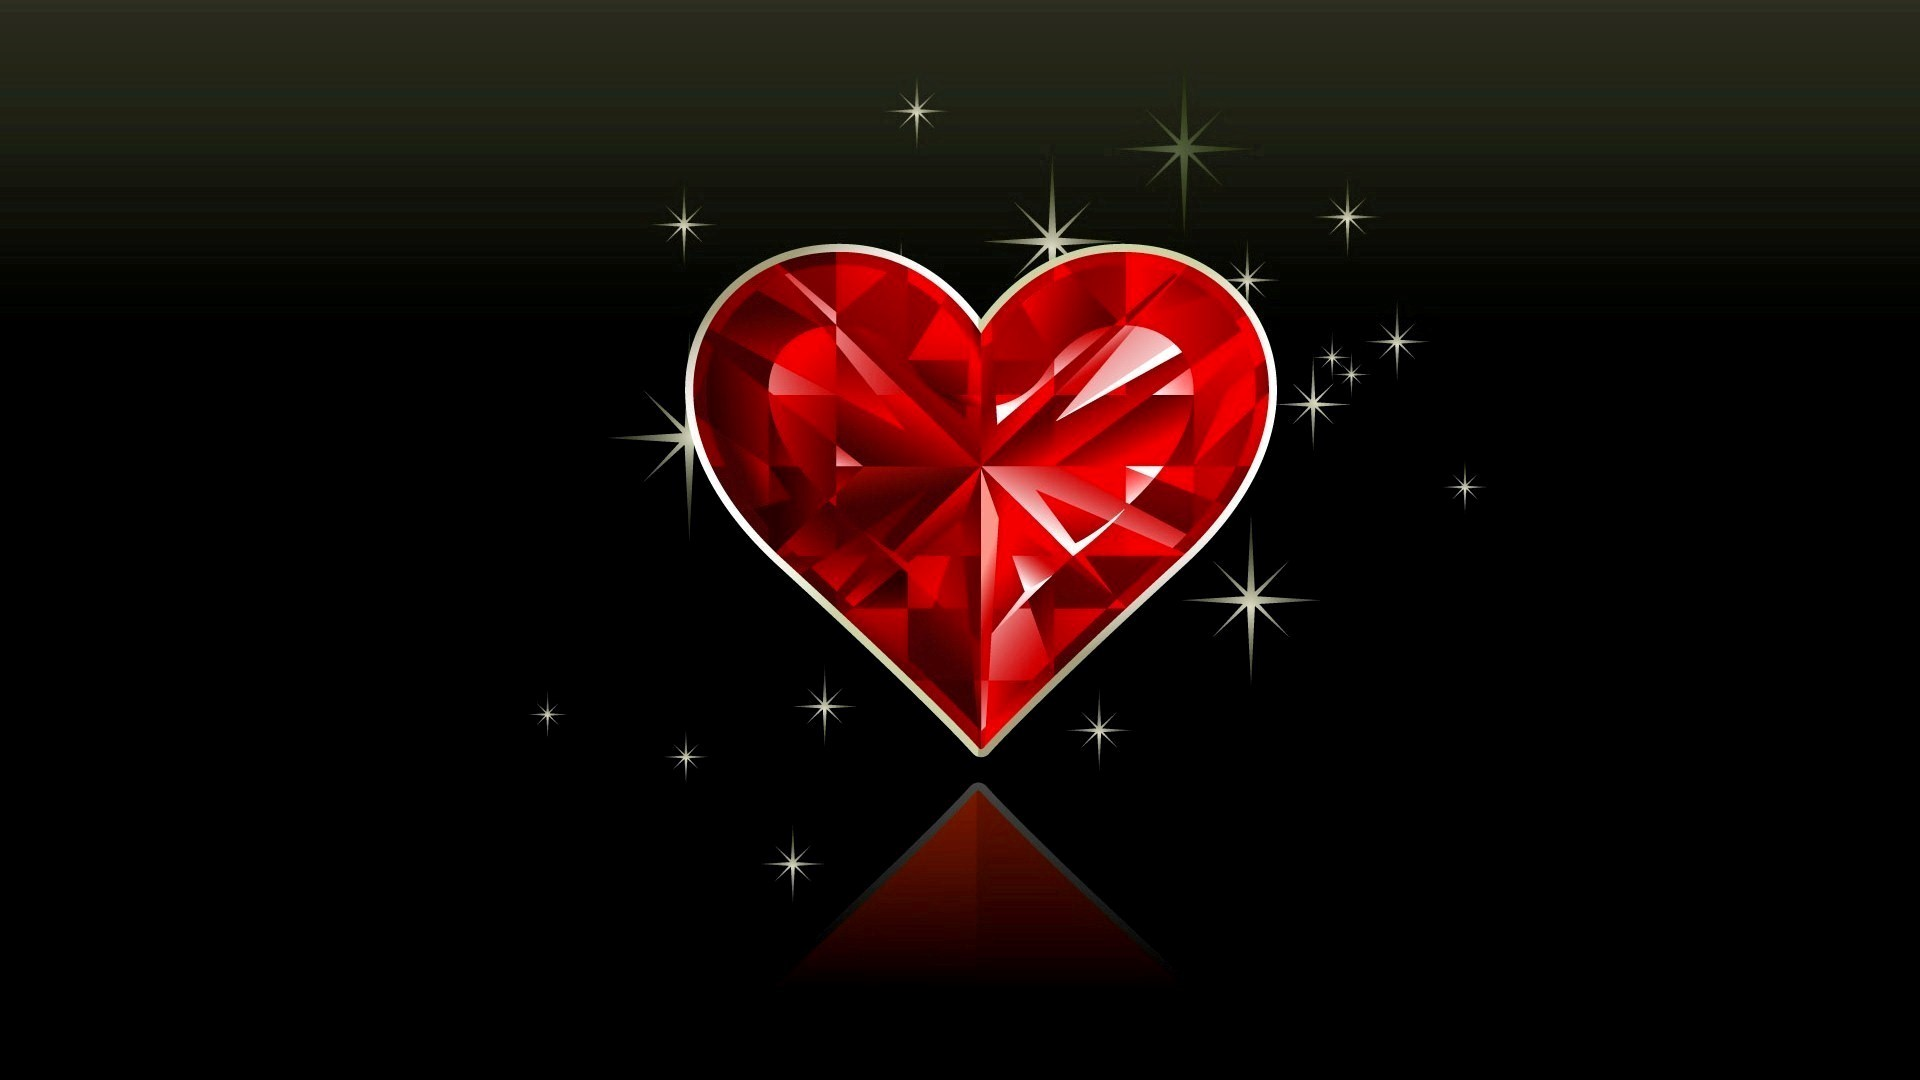 Red Crystal Heart in Black Background   HD Wallpapers